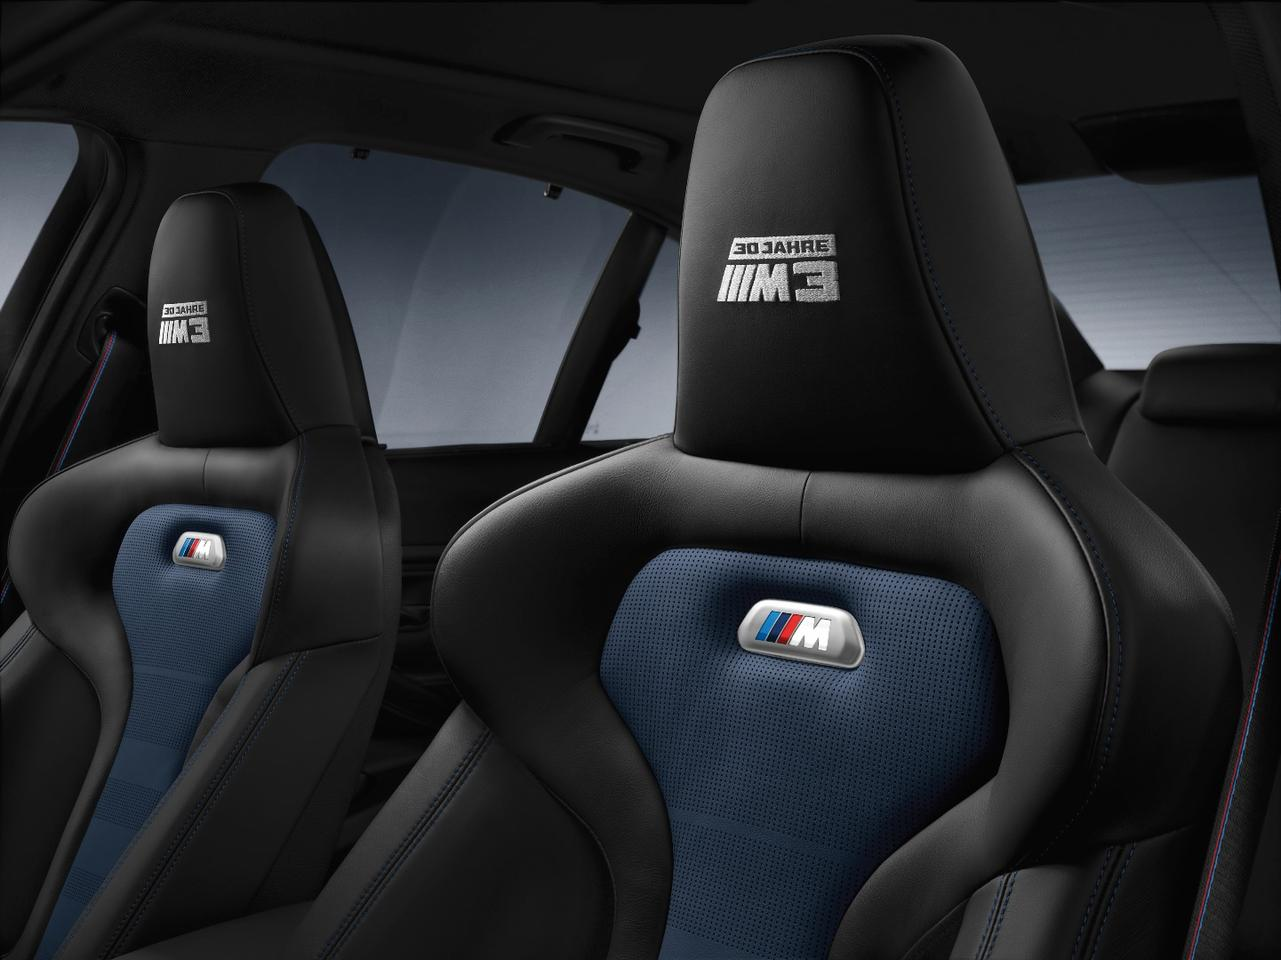 The M3's seats look like they mean business.